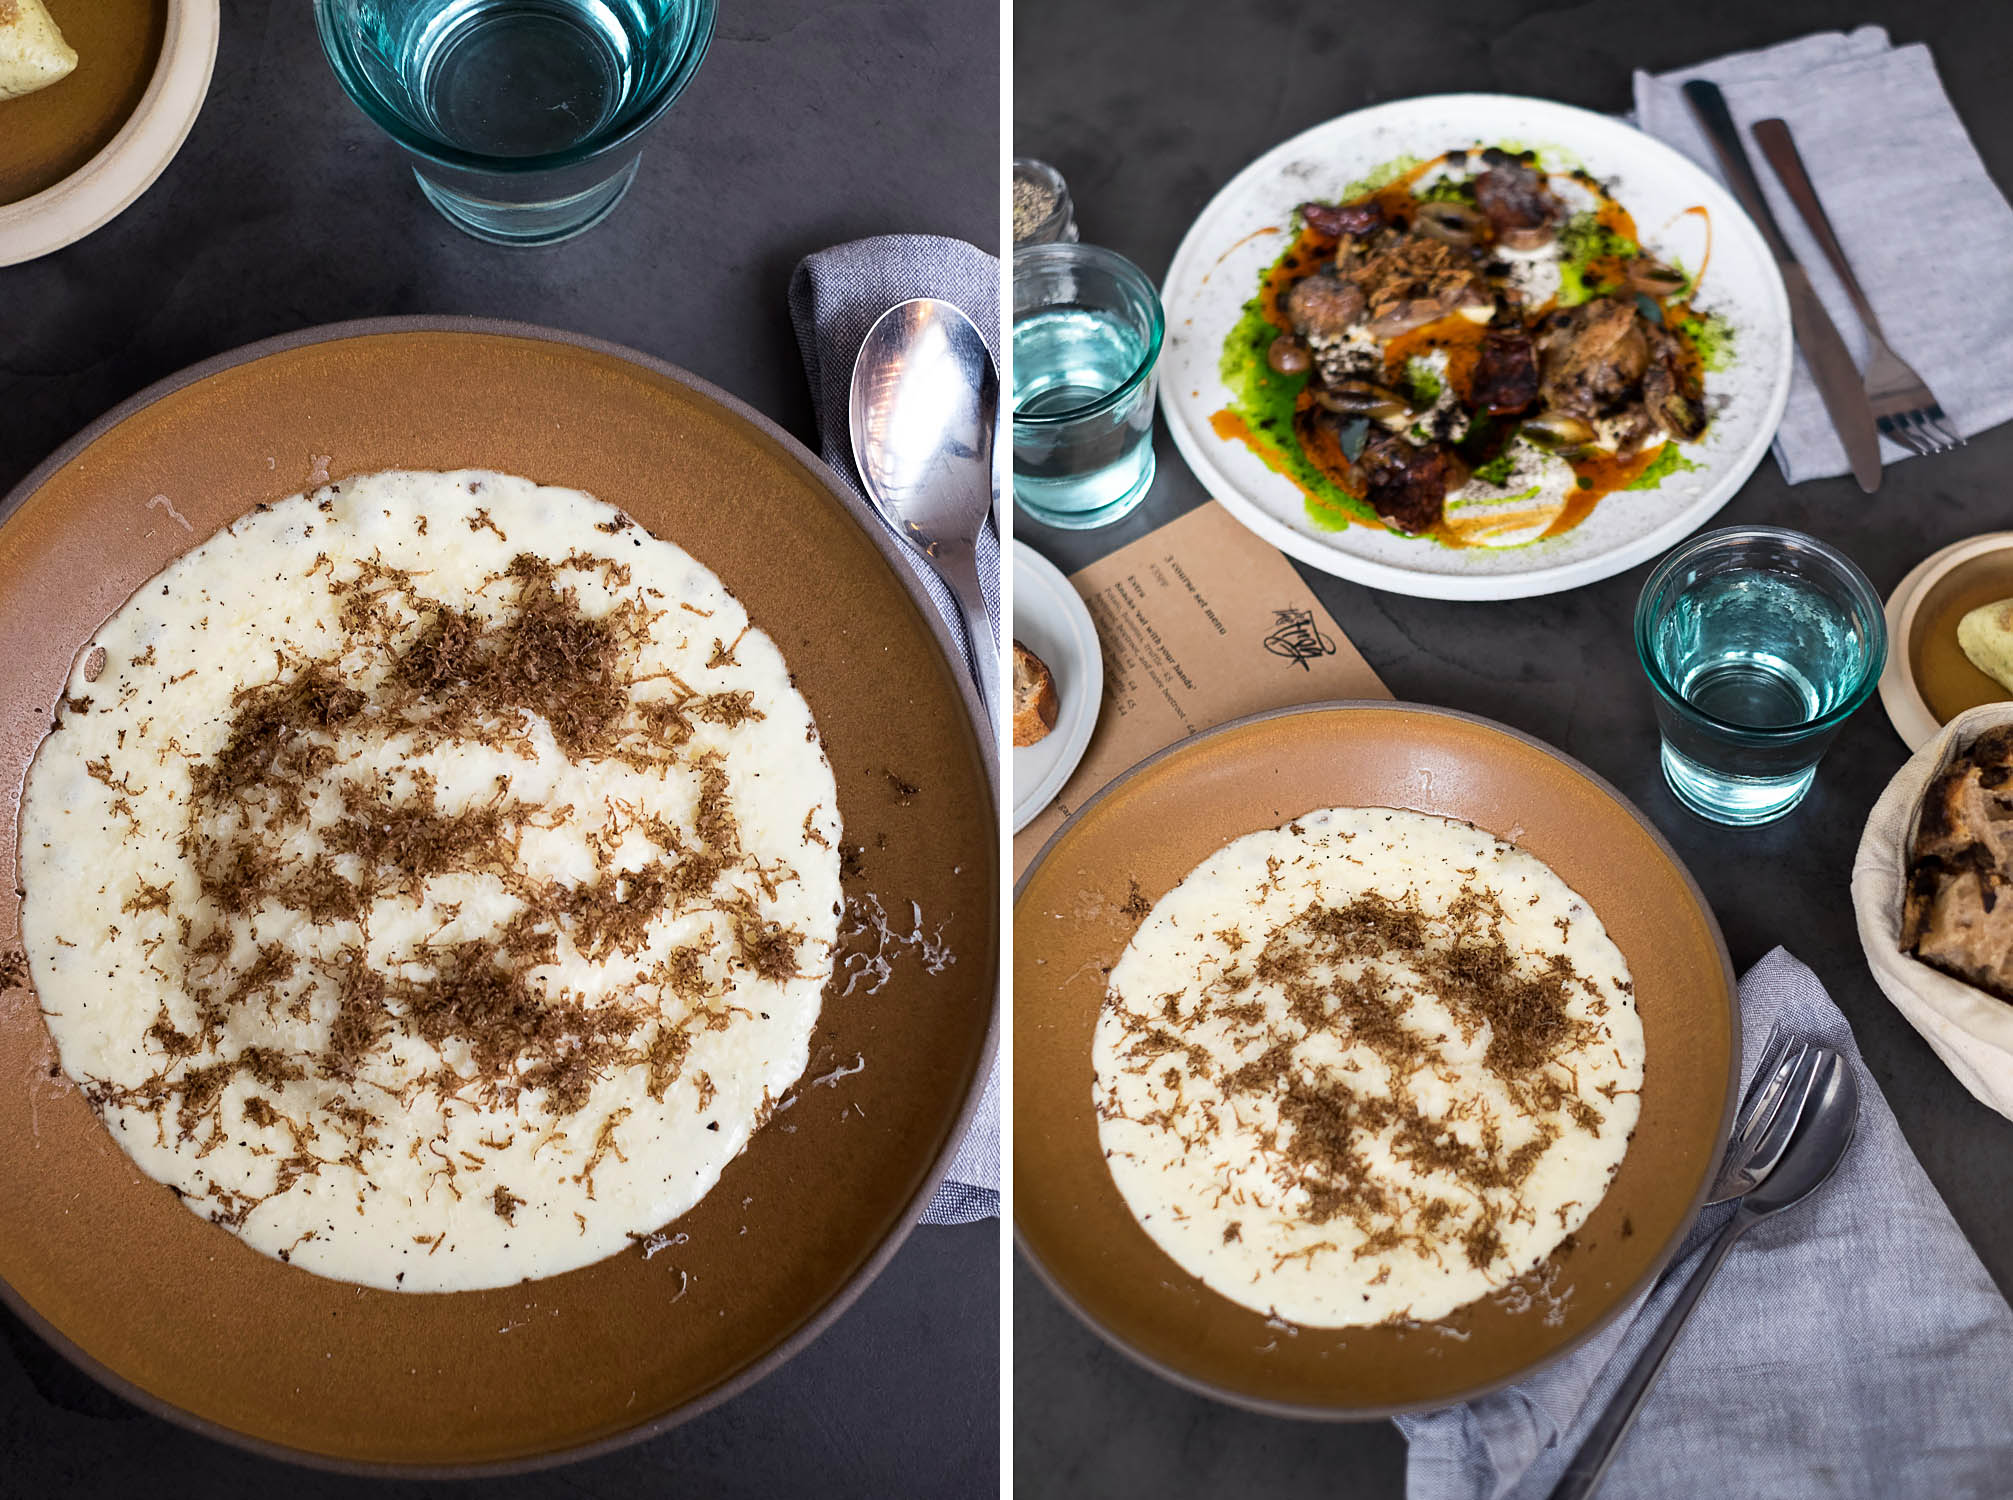 Mac and cheese / Fine Dining Set Menu Lunch at The Frog E1 in Spitalfields, London